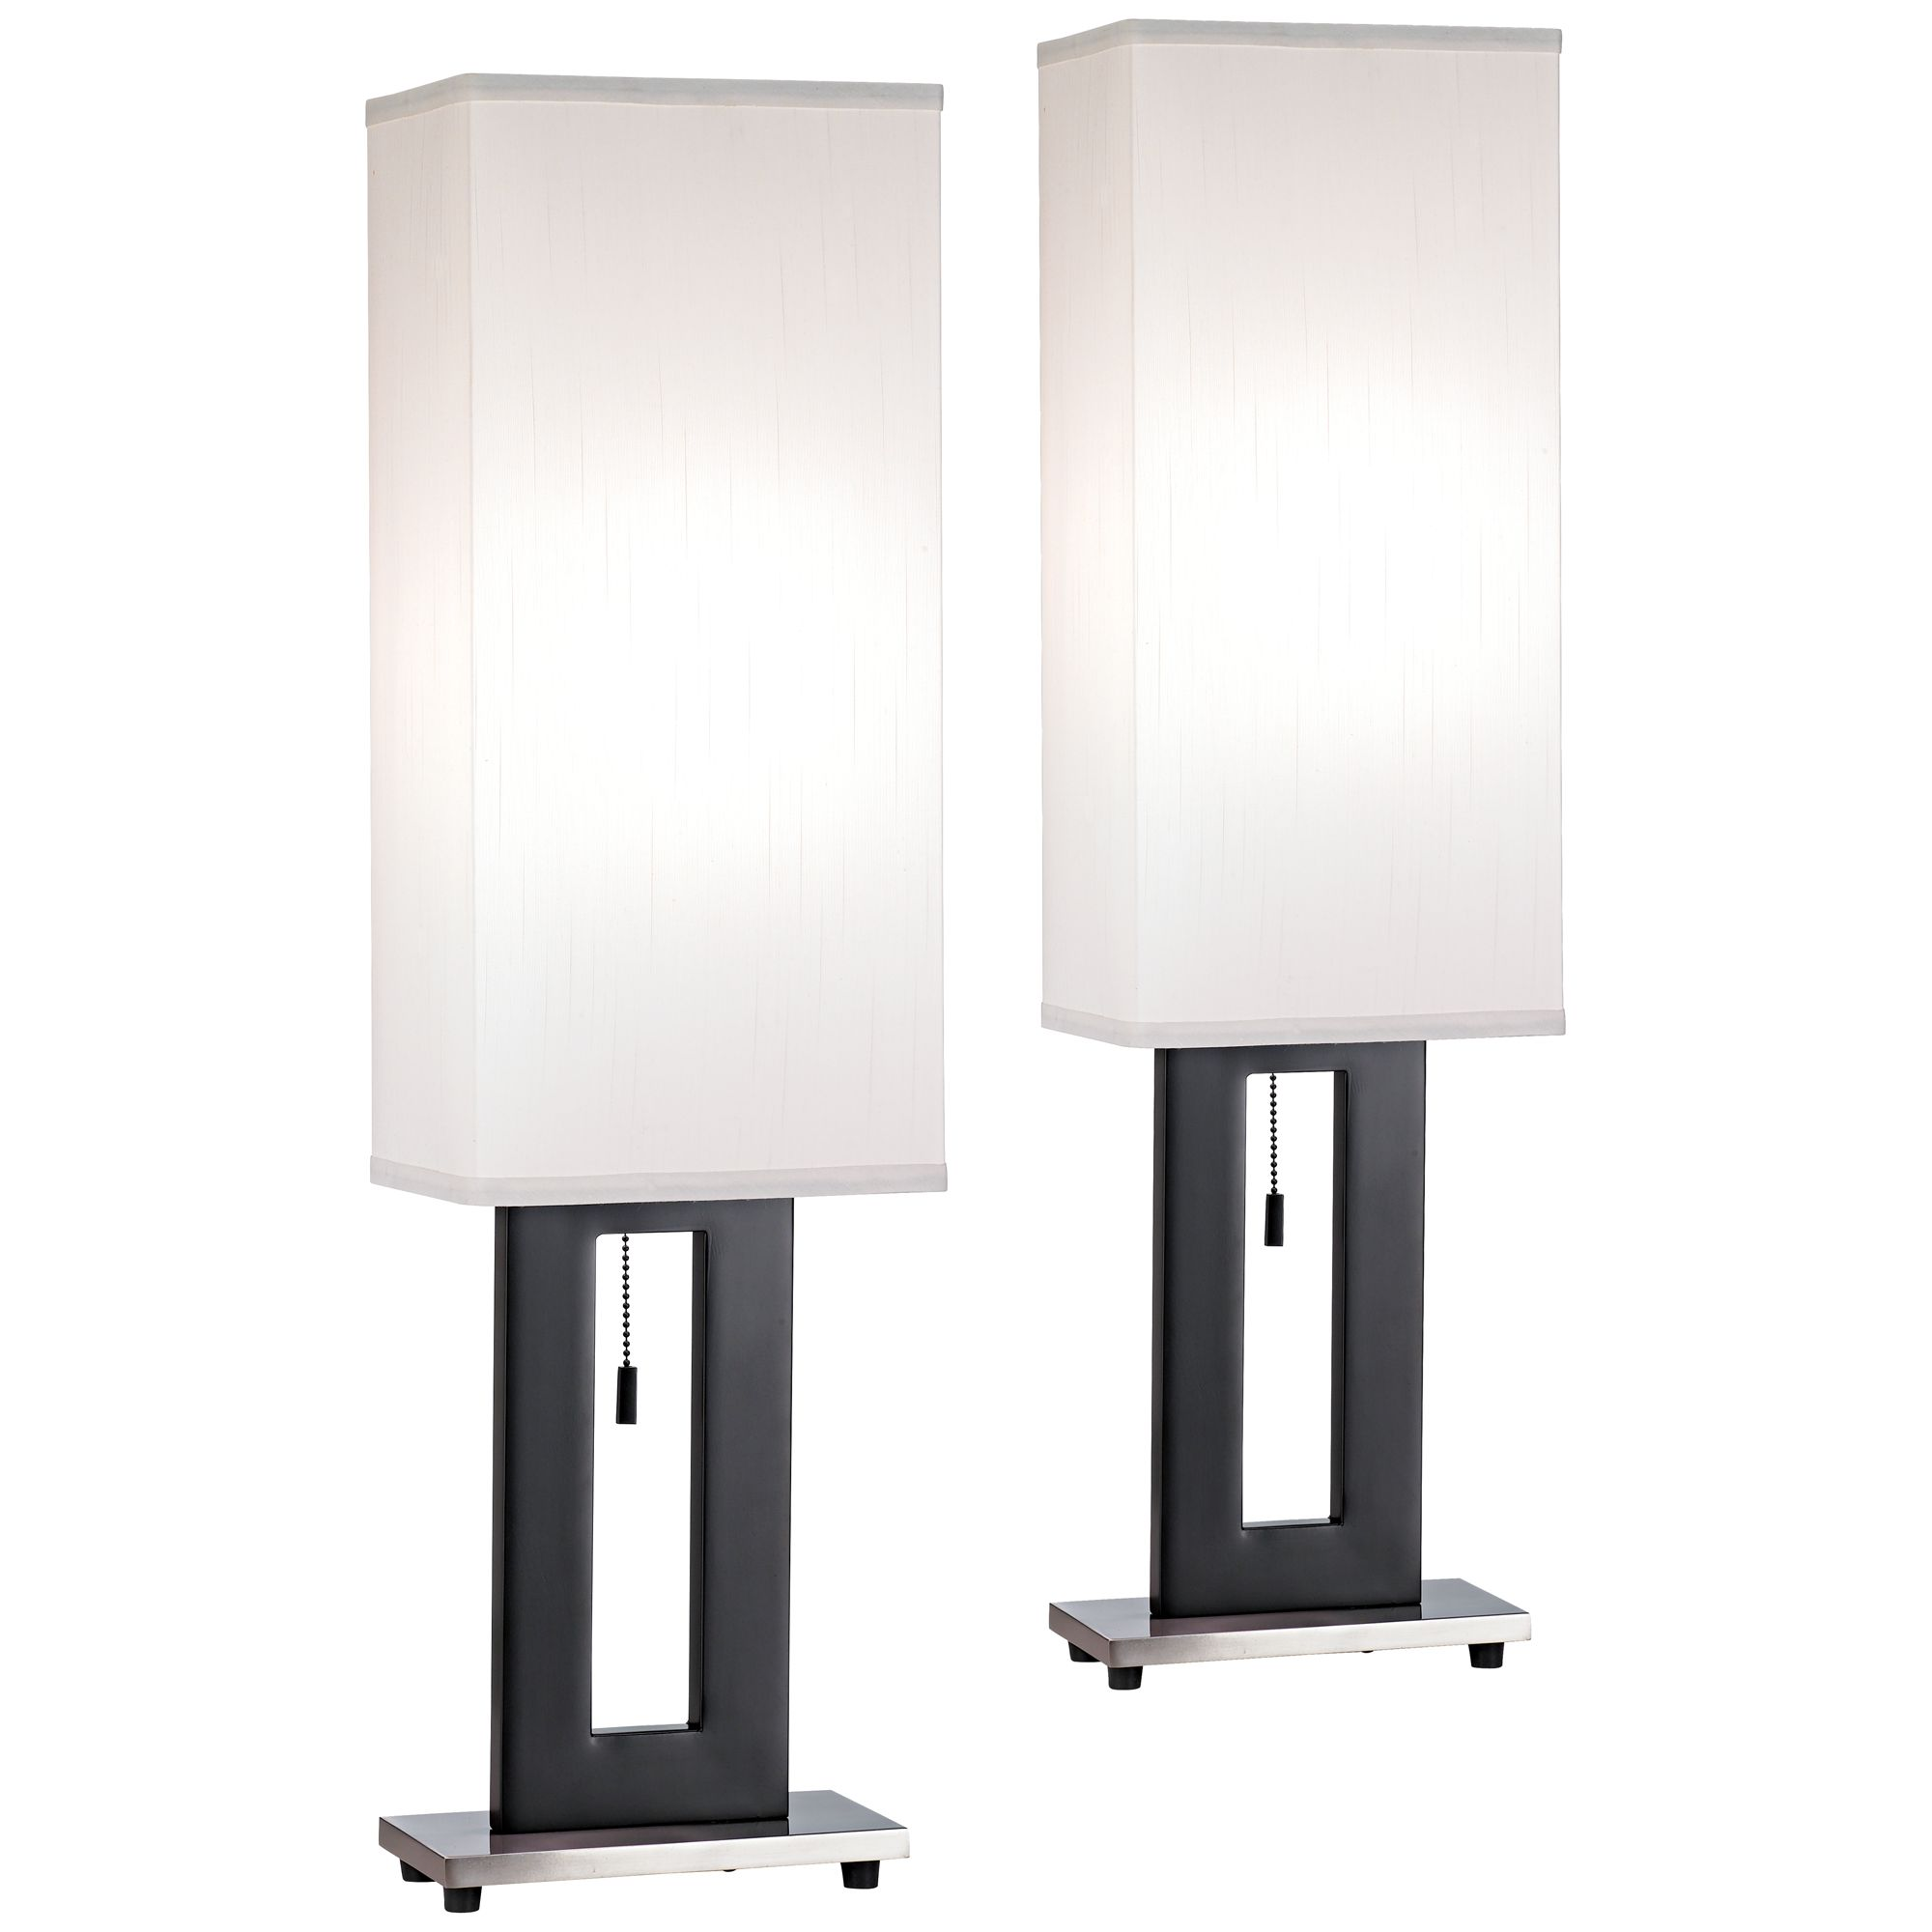 360 Lighting Modern Table Lamps Set Of 2 Black Rectangular Floating Box  Shade For Living Room Family Bedroom Bedside Nightstand   Walmart.com